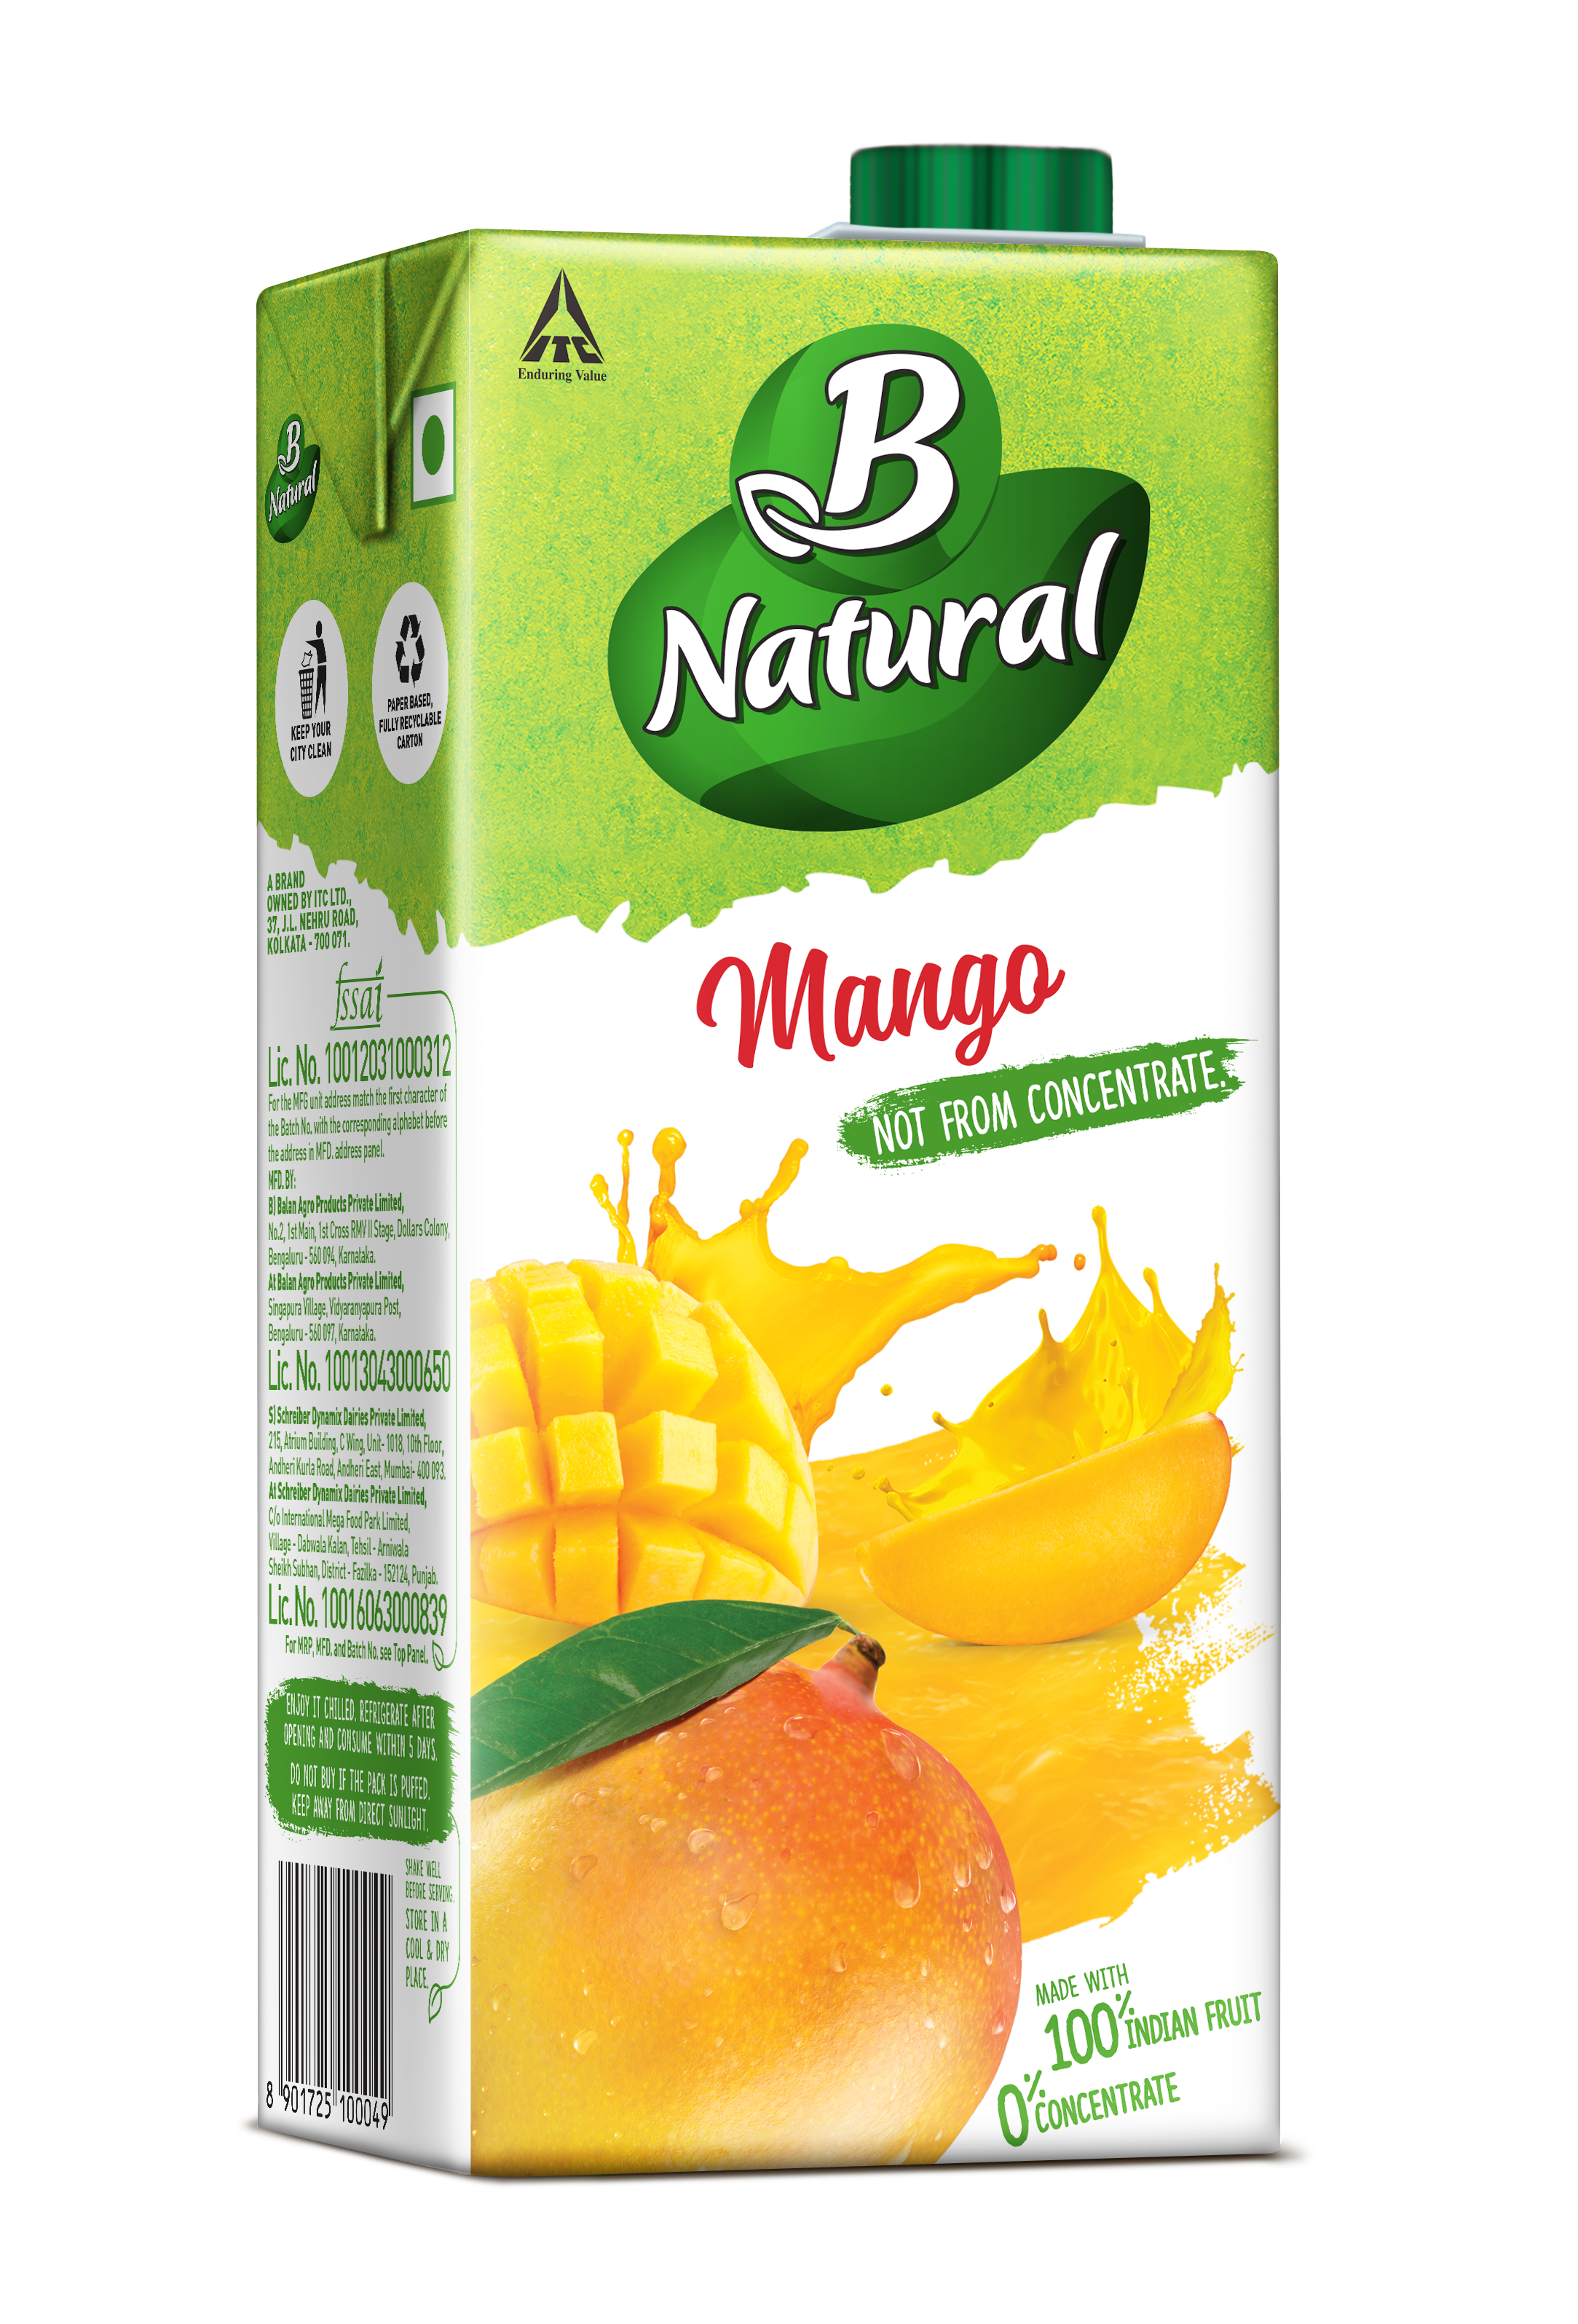 B Natural 100 Indian Fruit 0 Concentrate